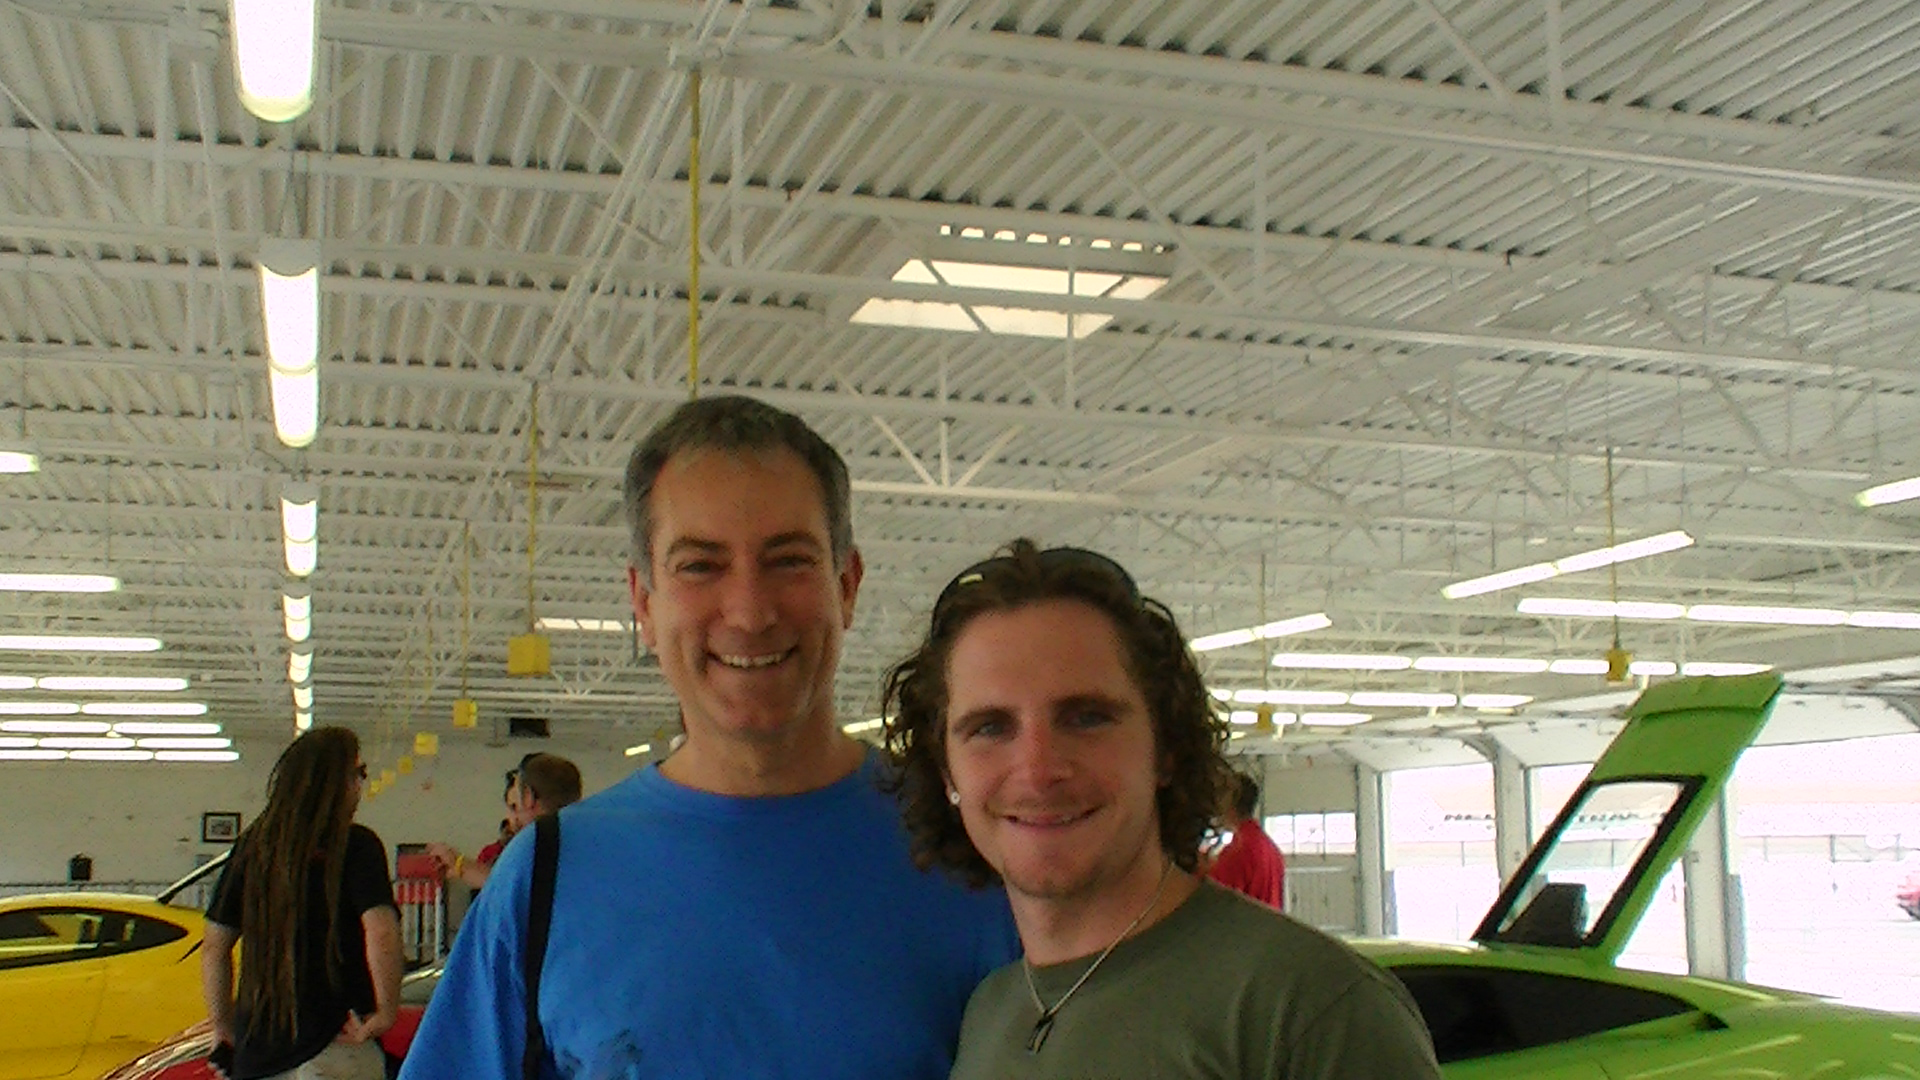 Brian Fanale and Gershon Yakir at the Exotic car racing